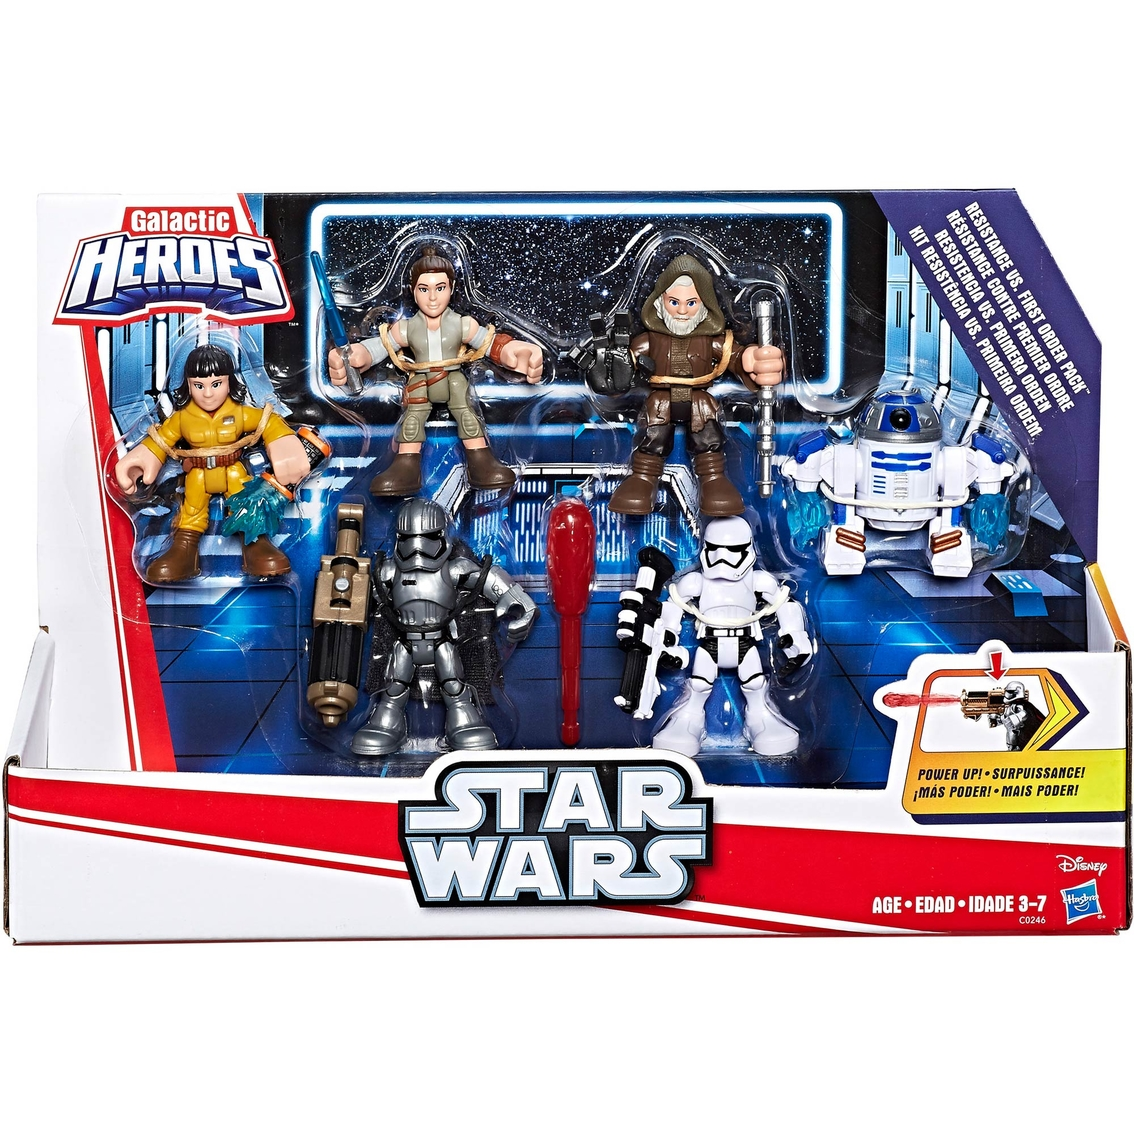 Mulit Kinds Playskool Star Wars Galactic Heroes Hasbro Action Figures to Select